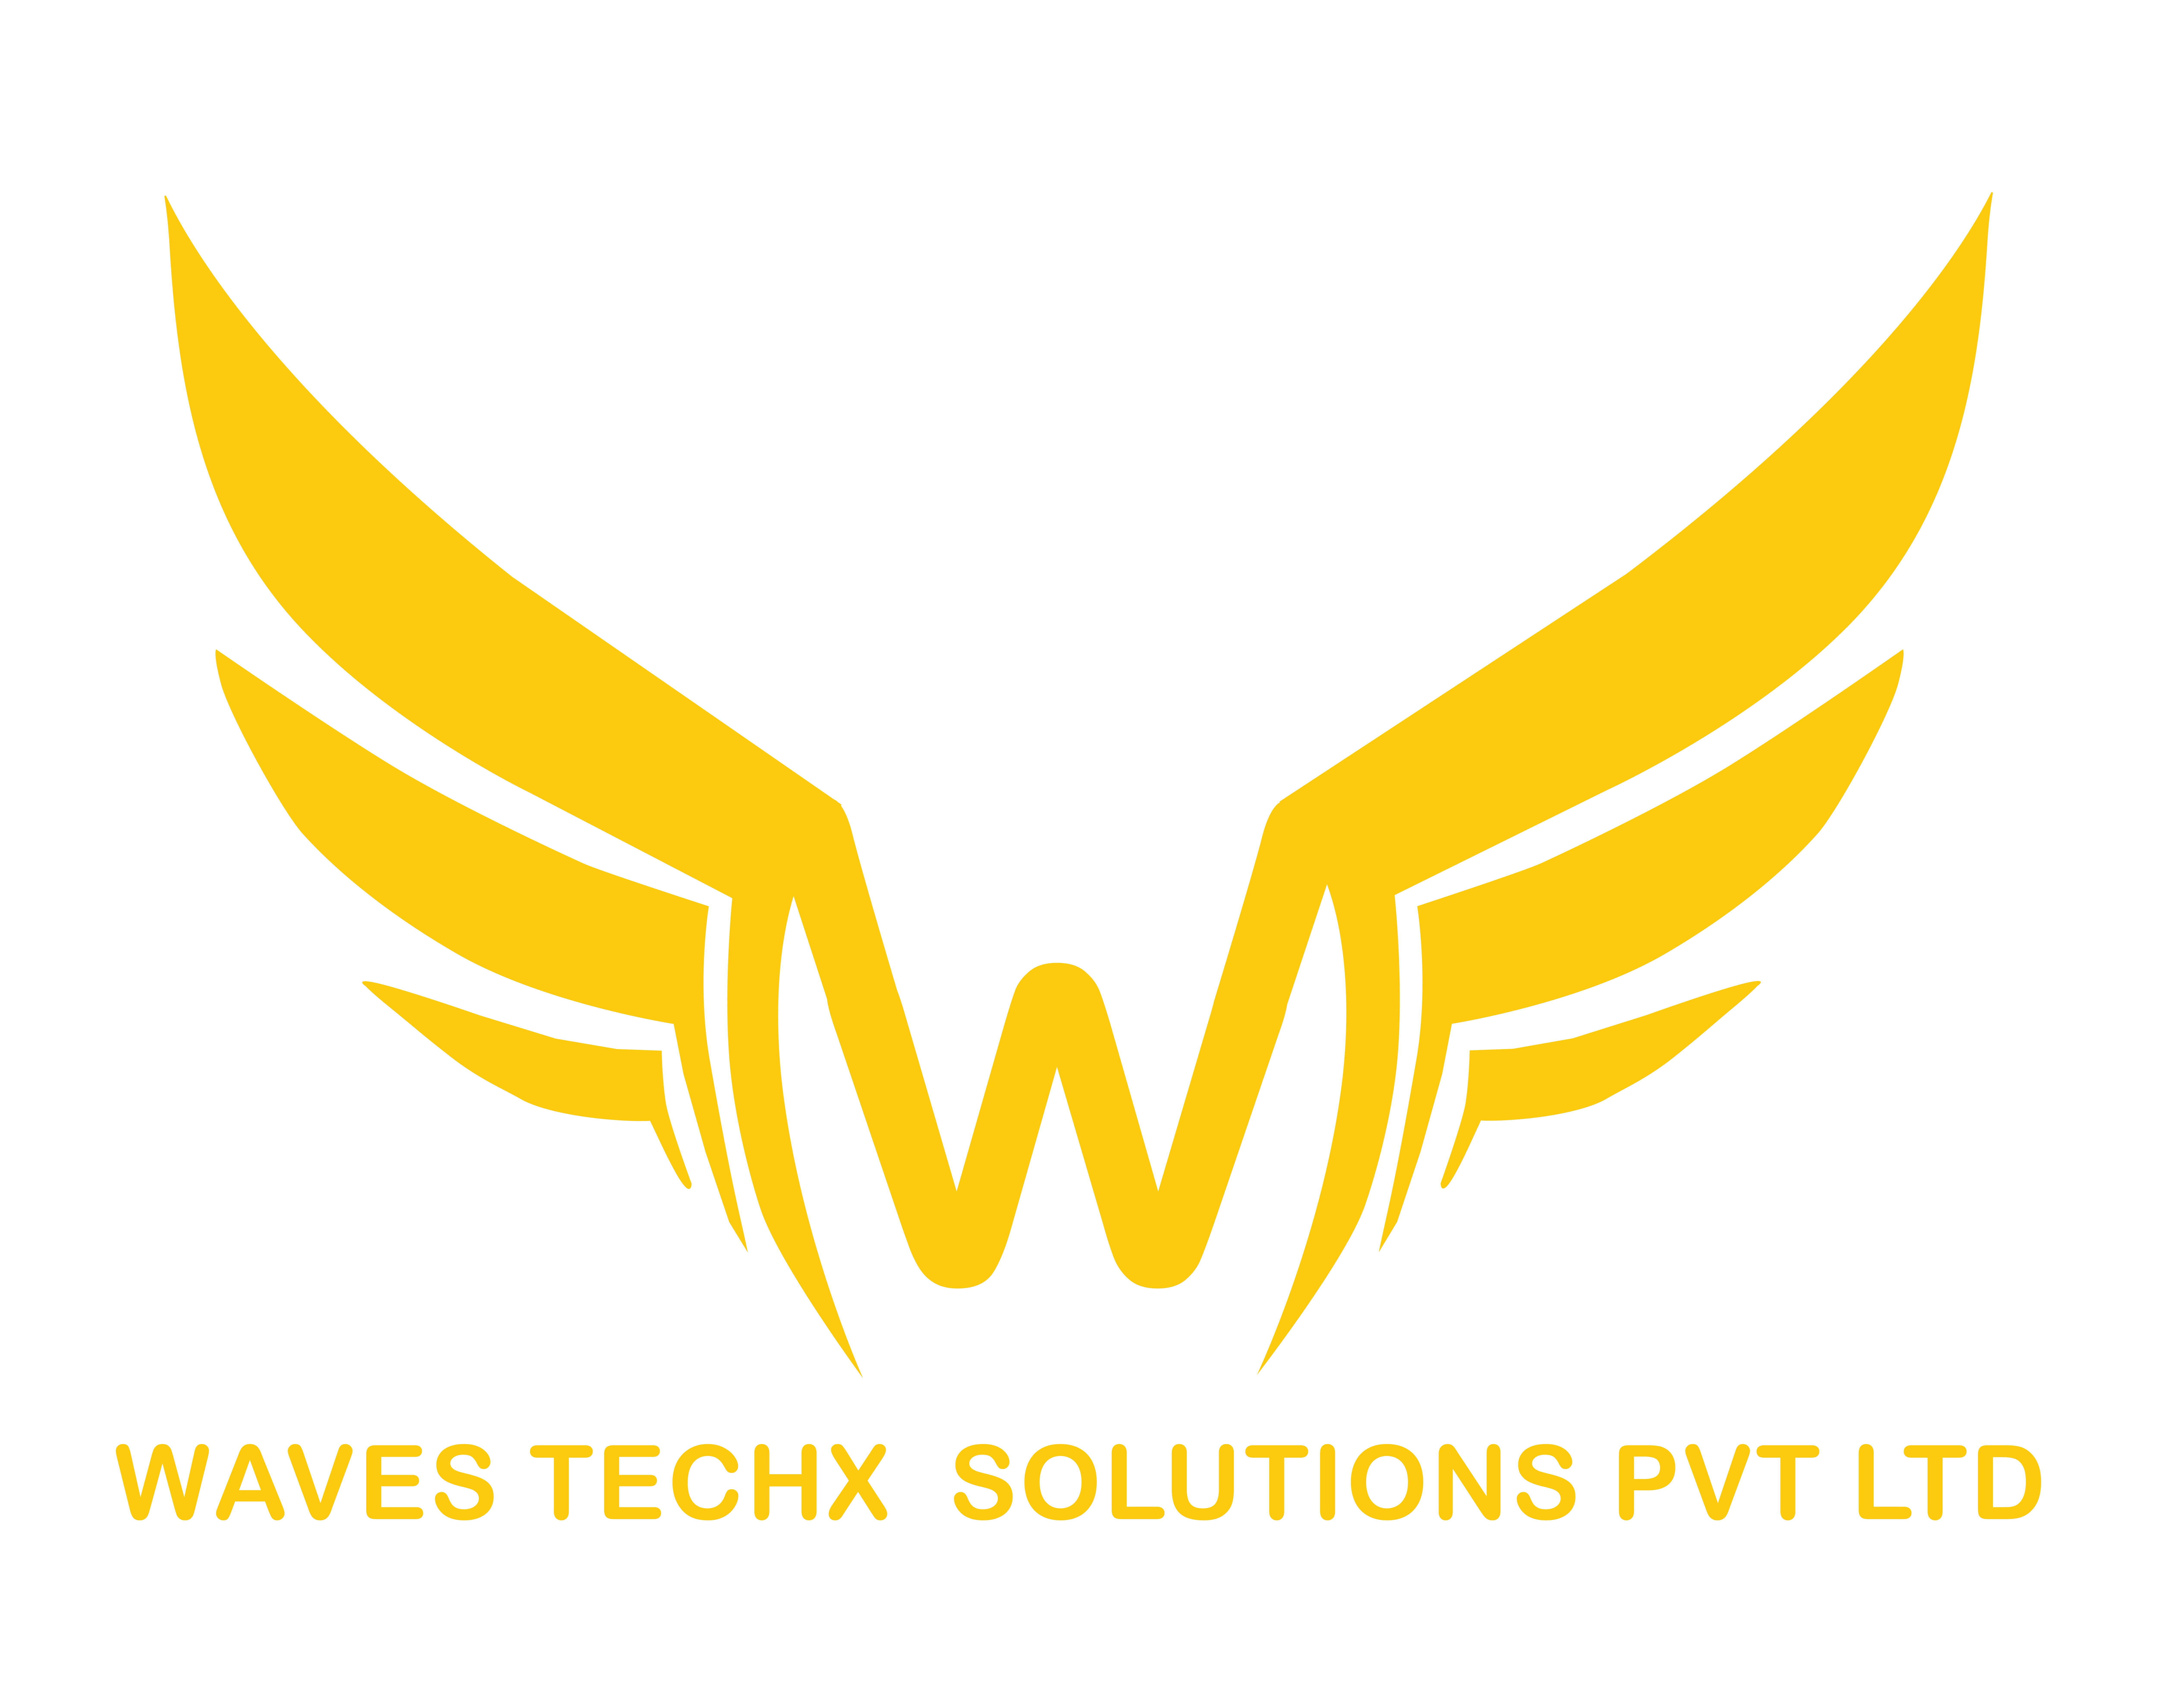 Waves - GPS suppliers